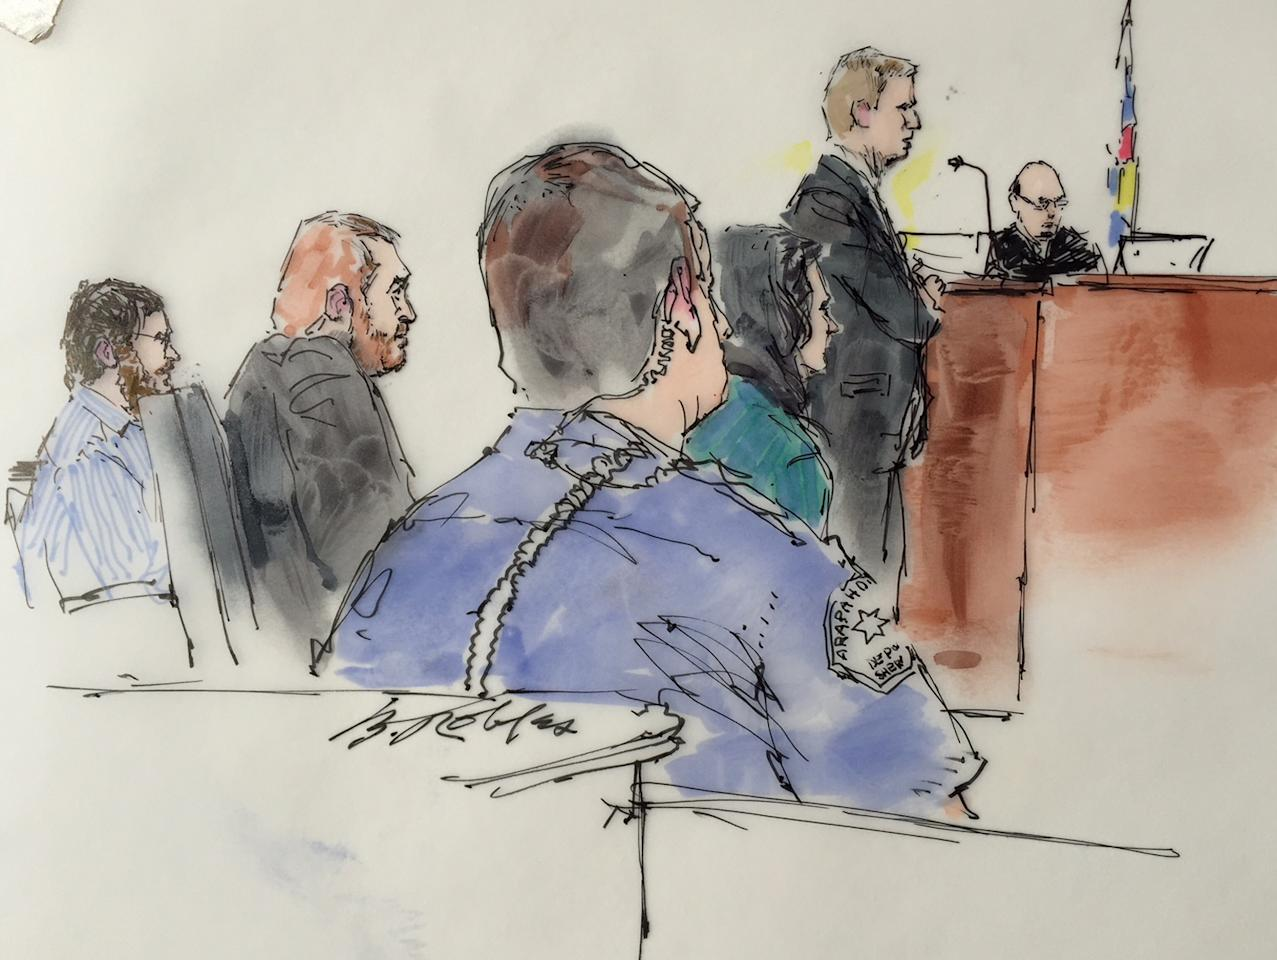 Arapahoe County District Attorney George Brauchler speaks as Defence attorney Dan King (2ndL), James Holmes (L) and Judge Carlos Samour, listen in Arapahoe County District Court in Denver, Colorado on February 11, 2015, in this courtroom sketch. Lawyers in the murder trial of Colorado theater gunman James Holmes are set to begin individual questioning of prospective jurors in the death-penalty case on Wednesday, a process scheduled to take four months to complete.  REUTERS/Bill Robles  (UNITED STATES - Tags: CRIME LAW) NO SALES. NO ARCHIVES. FOR EDITORIAL USE ONLY. NOT FOR SALE FOR MARKETING OR ADVERTISING CAMPAIGNS